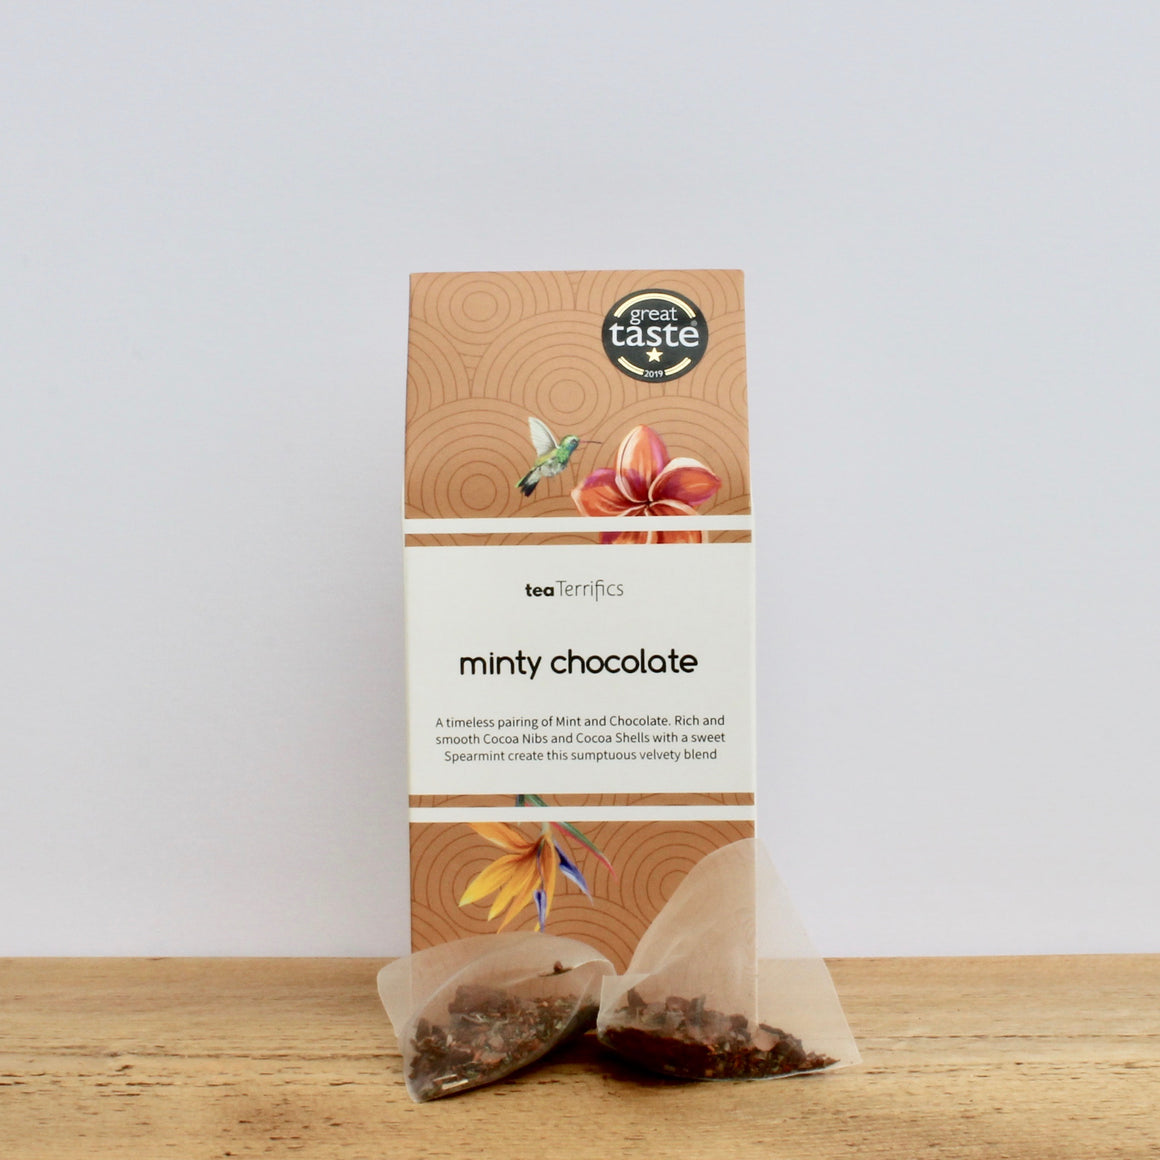 Minty Chocolate - Delicious Chocolate And Mint - 17 Biodegradable Tea Bags